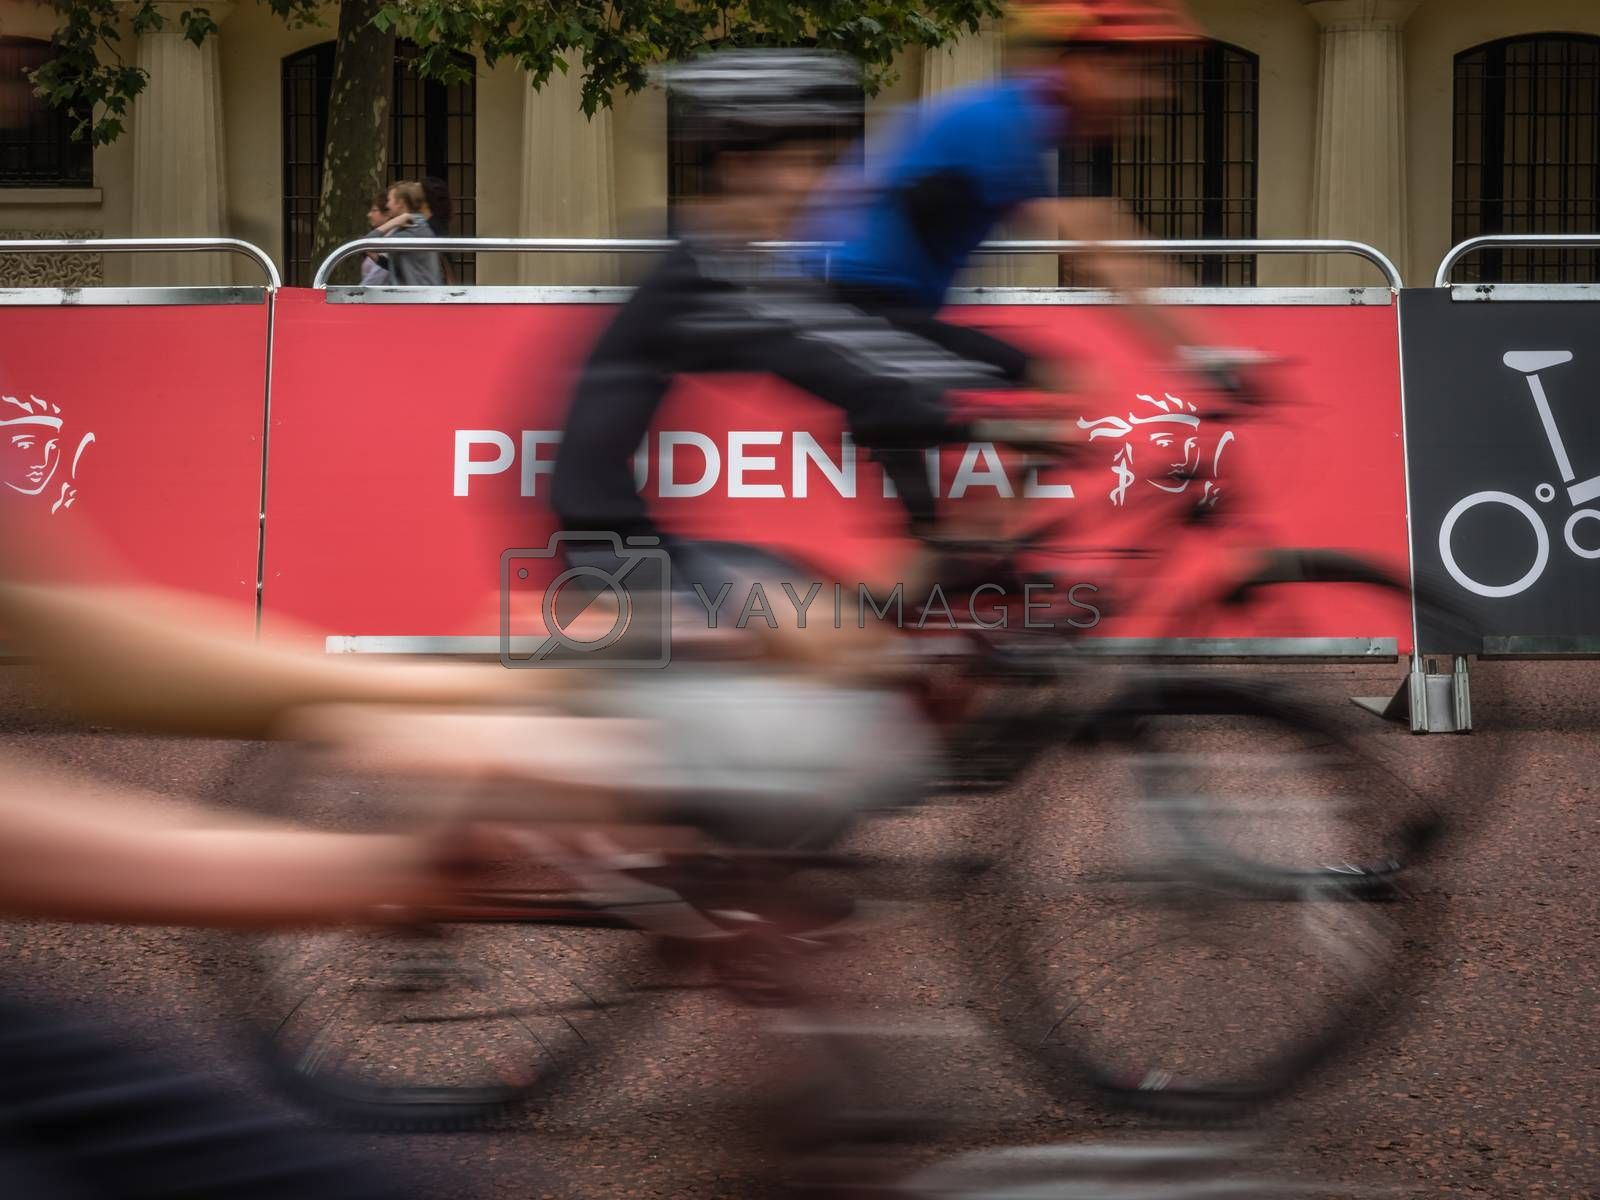 London, July 2016. Action during the Prudential Ride London Freecycle event in London UK that took place over the weekend on 30 and 31 July 2016